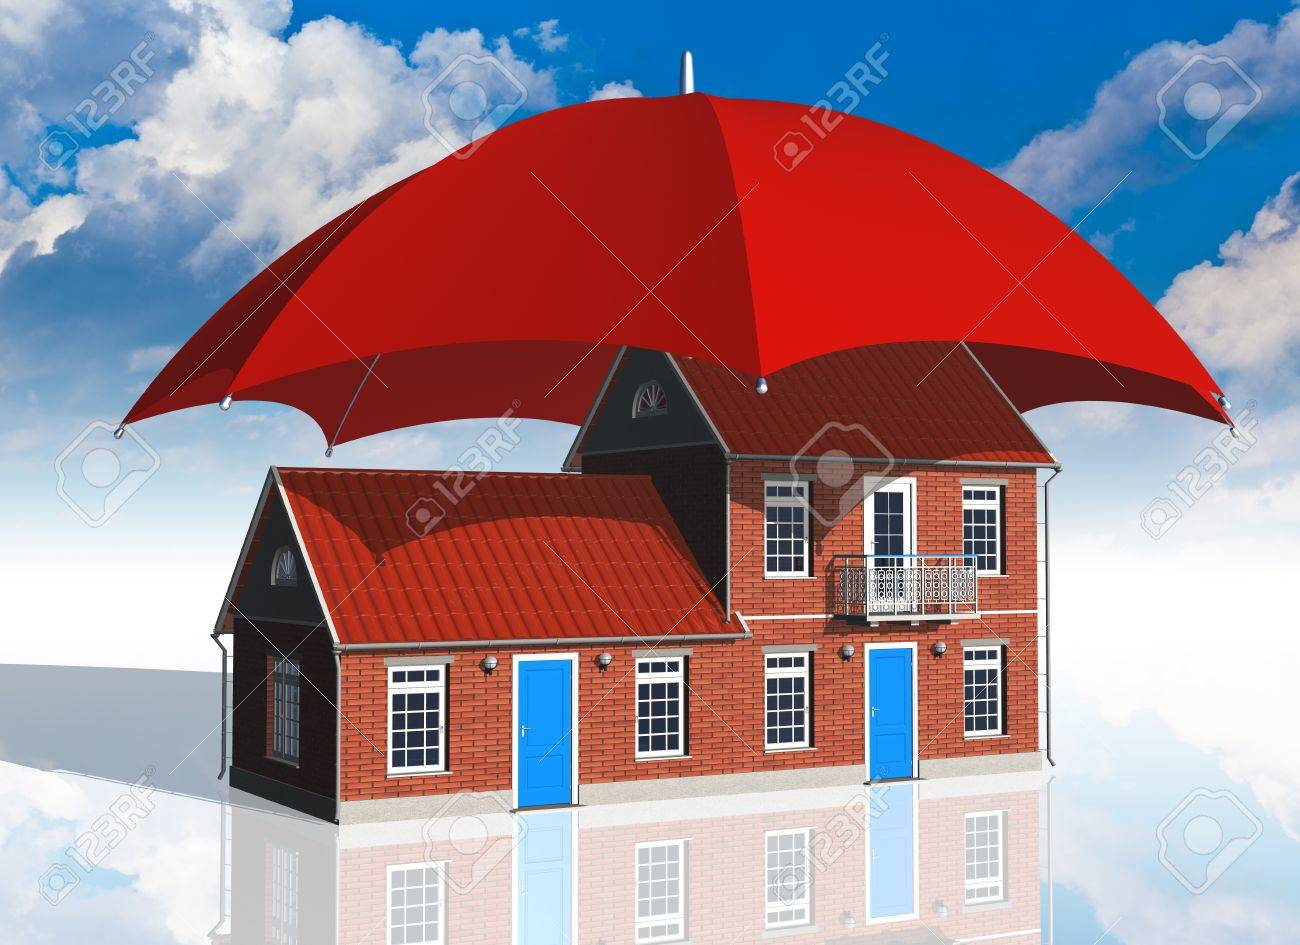 residential house covered by red umbrella - 9647495